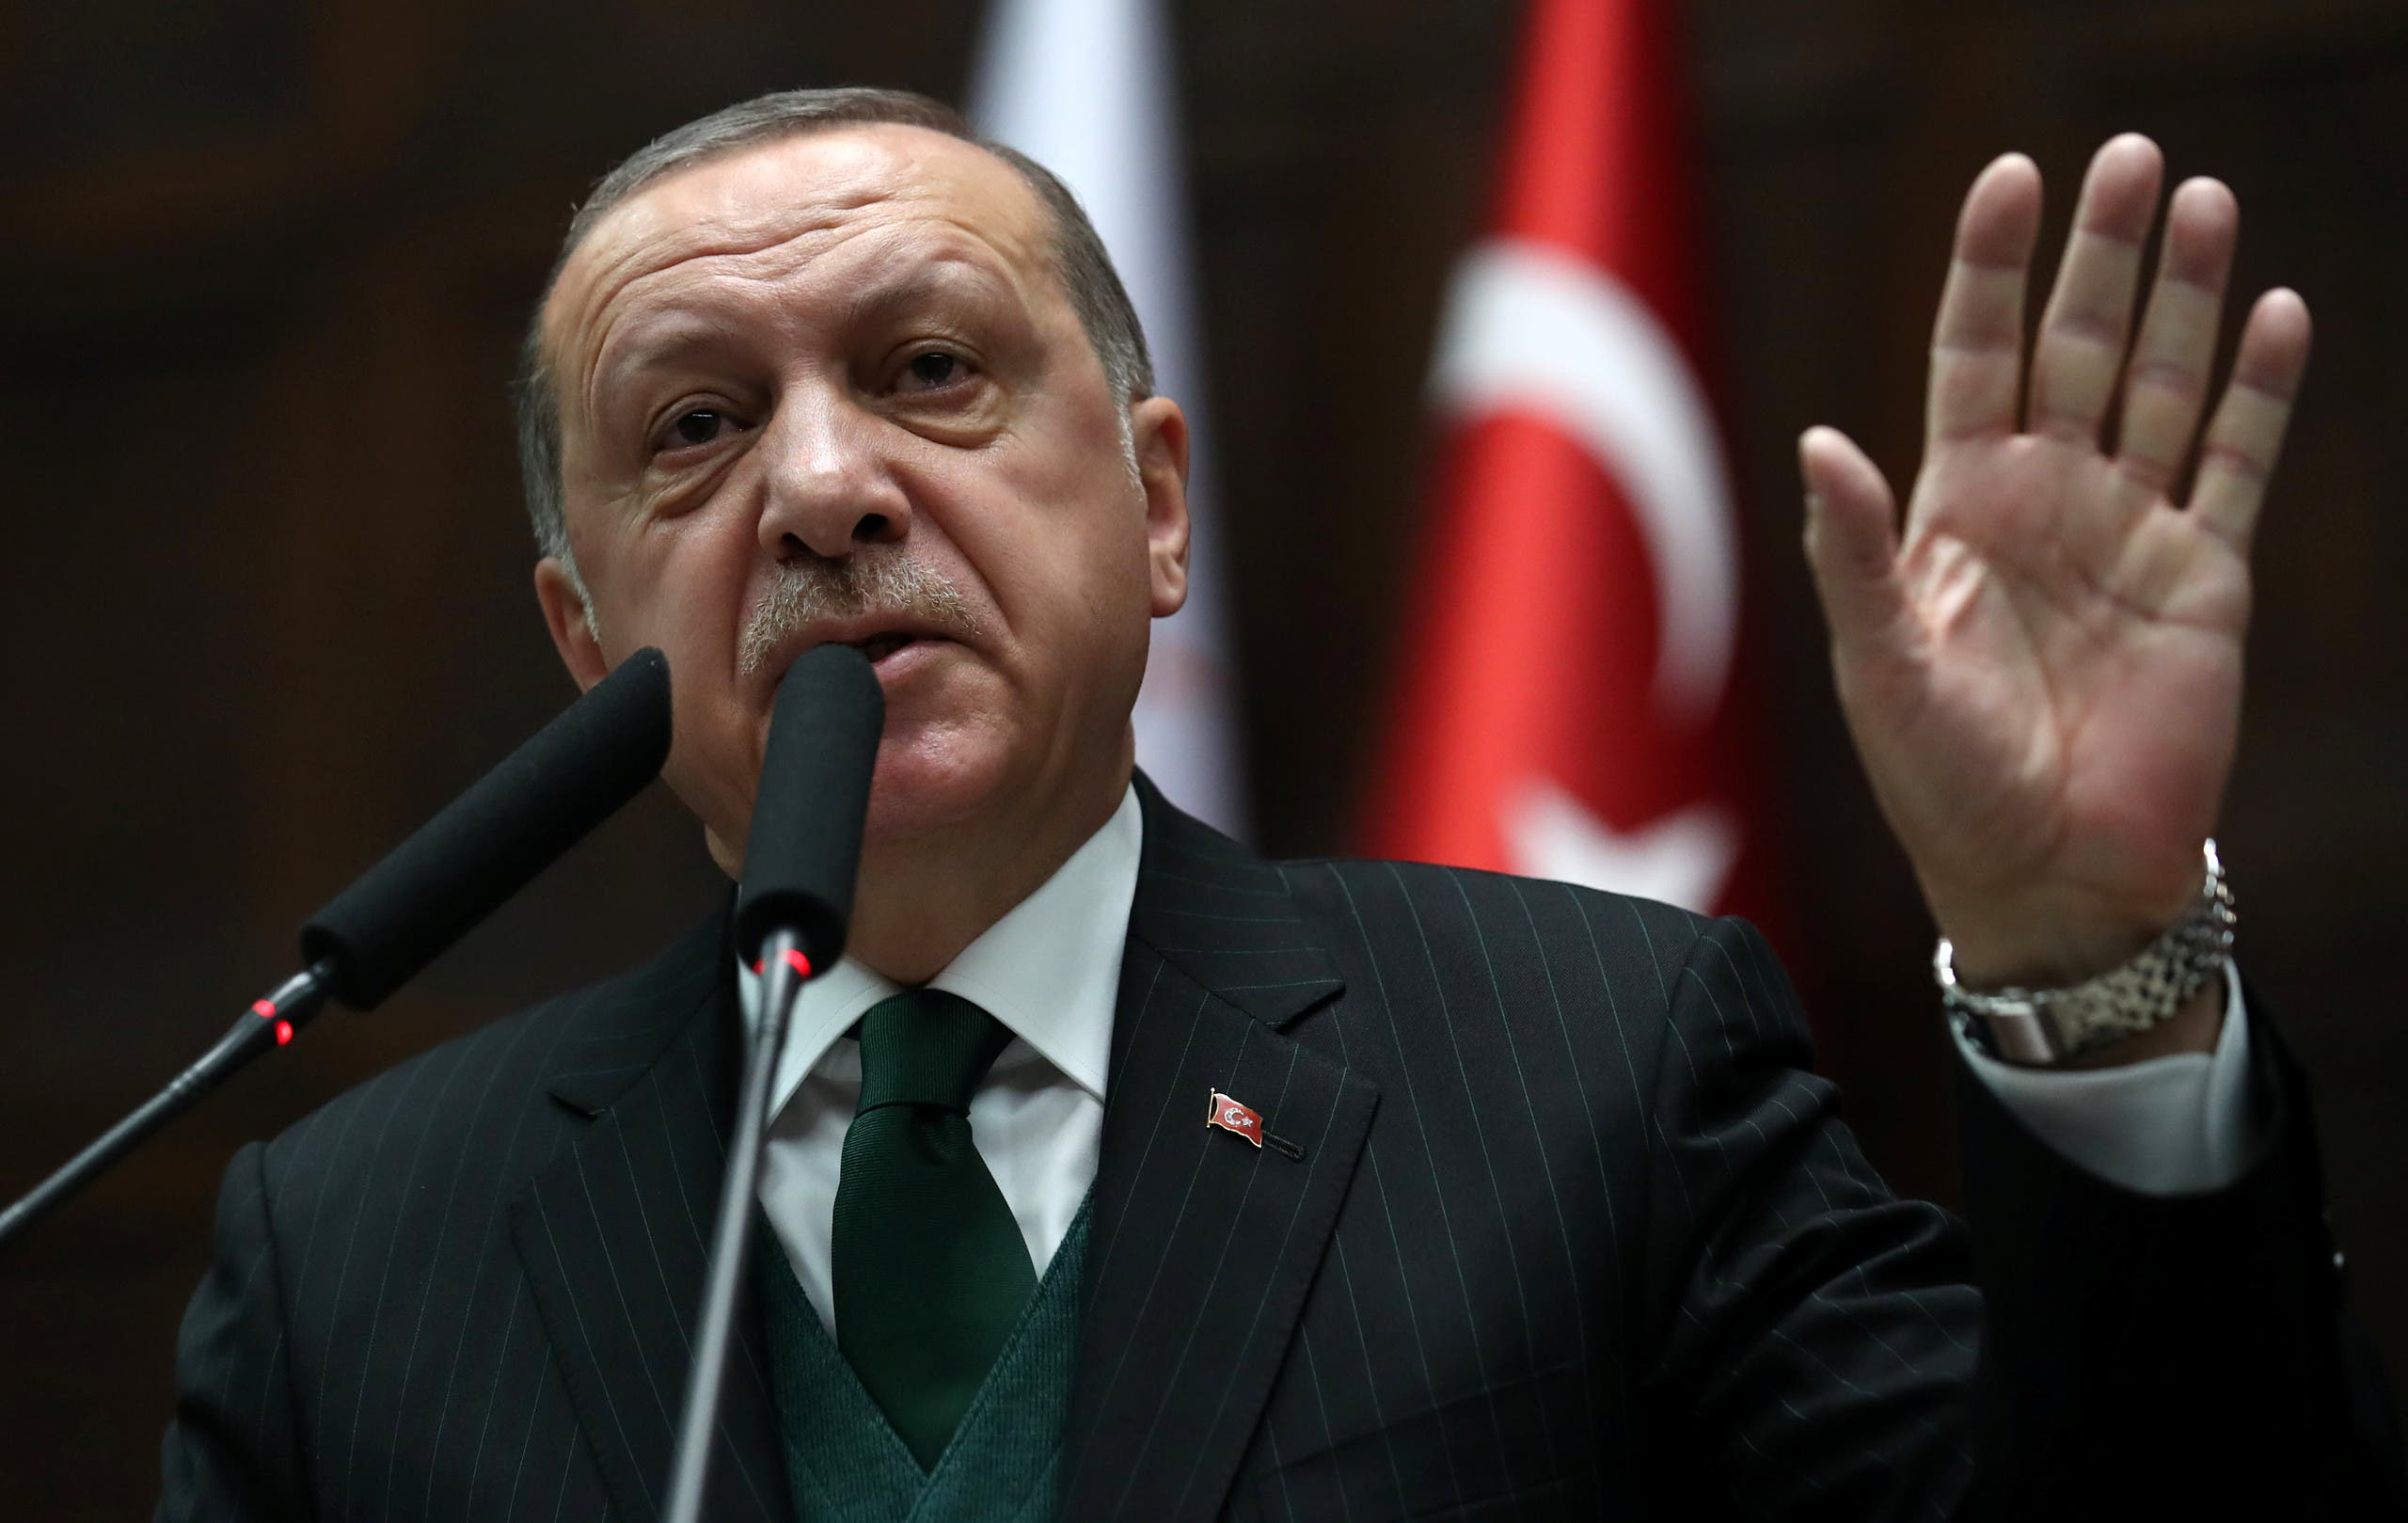 Turkish President Tayyip Erdogan speaks during a meeting in Ankara, Turkey March 9, 2018. Kayhan Ozer/Presidential Palace/Handout via REUTERS ATTENTION EDITORS - THIS PICTURE WAS PROVIDED BY A THIRD PARTY. NO RESALES. NO ARCHIVE.